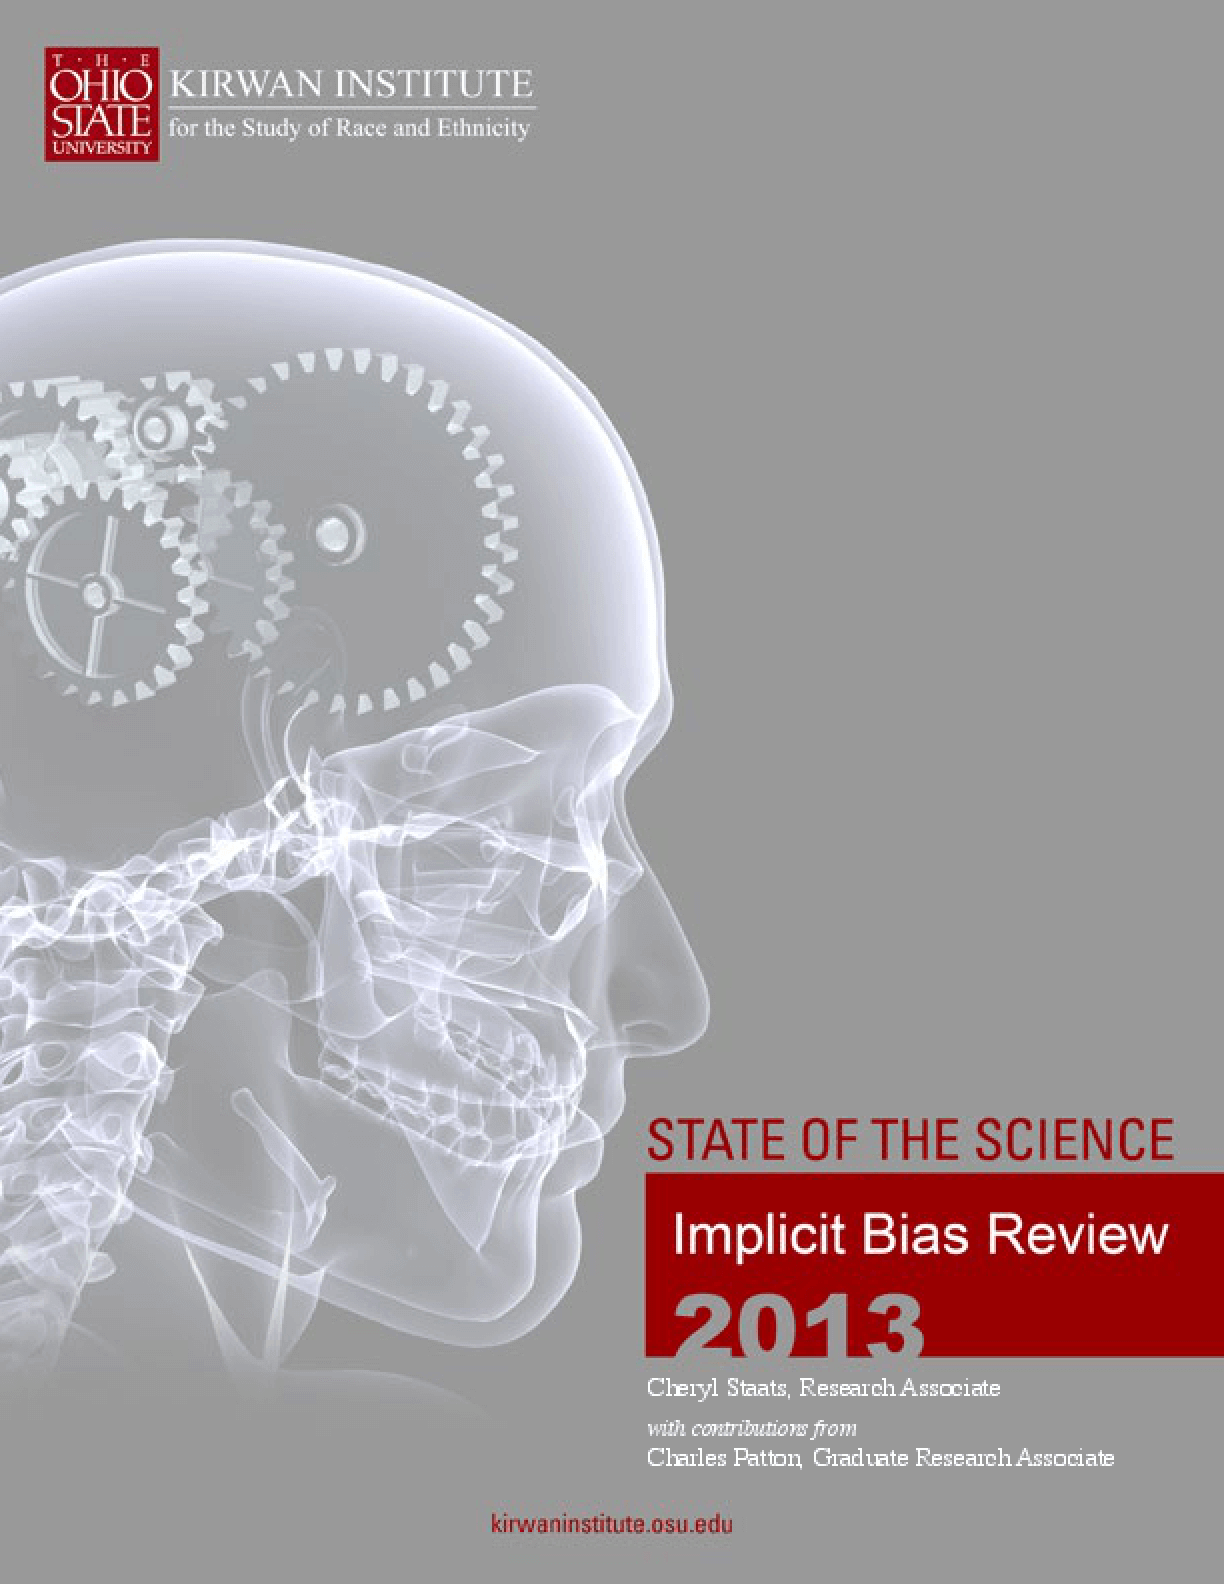 State of the Science: Implicit Bias Review 2013